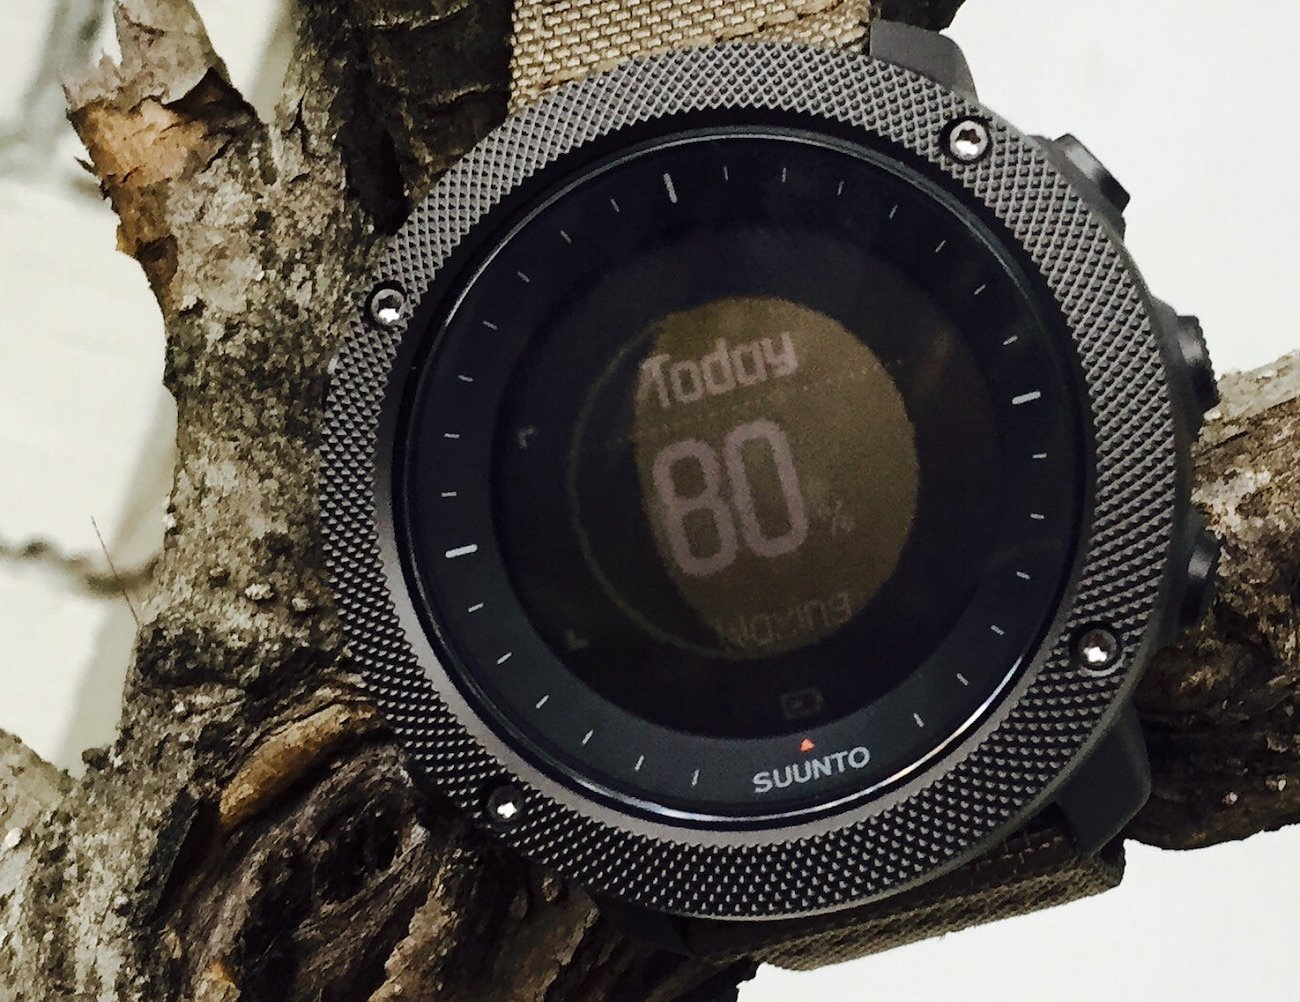 Suunto Traverse Alpha Watch With Outdoor Features Review